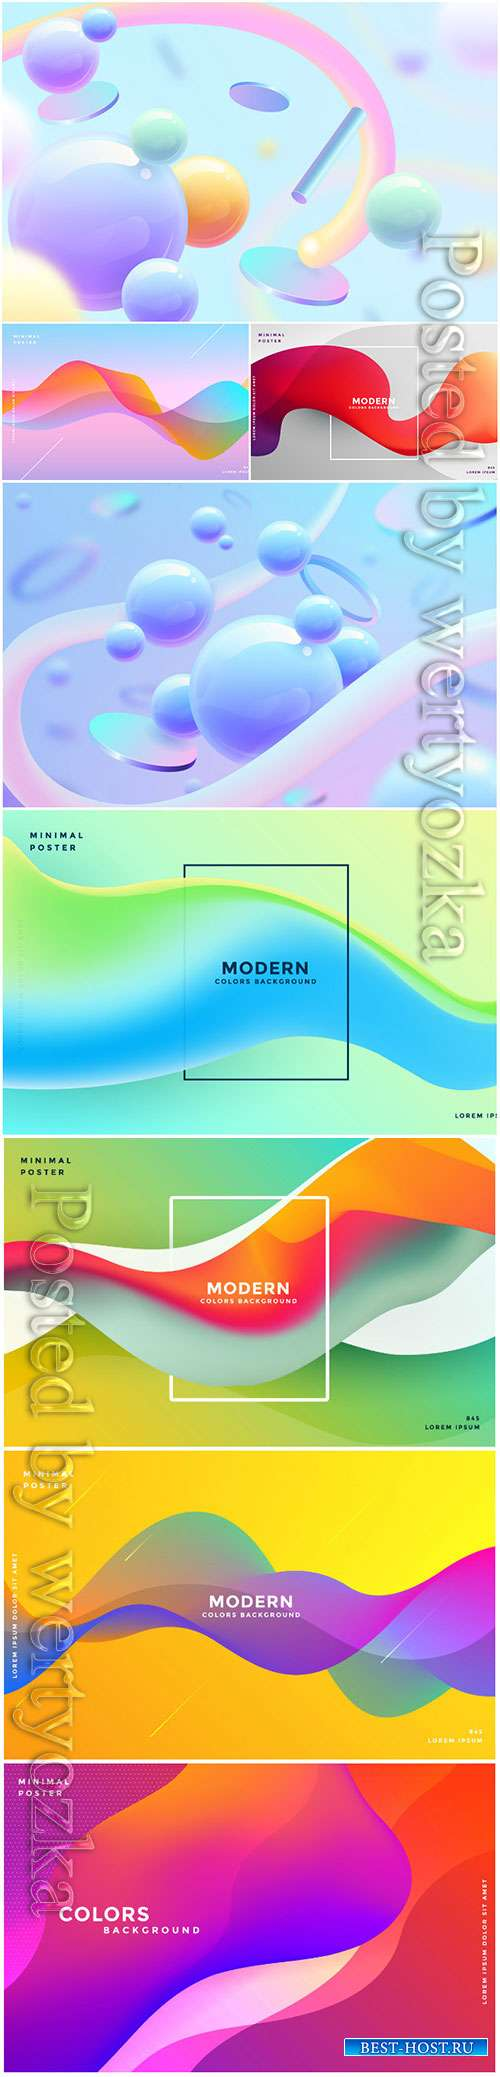 3d vector abstract background with colorful shapes